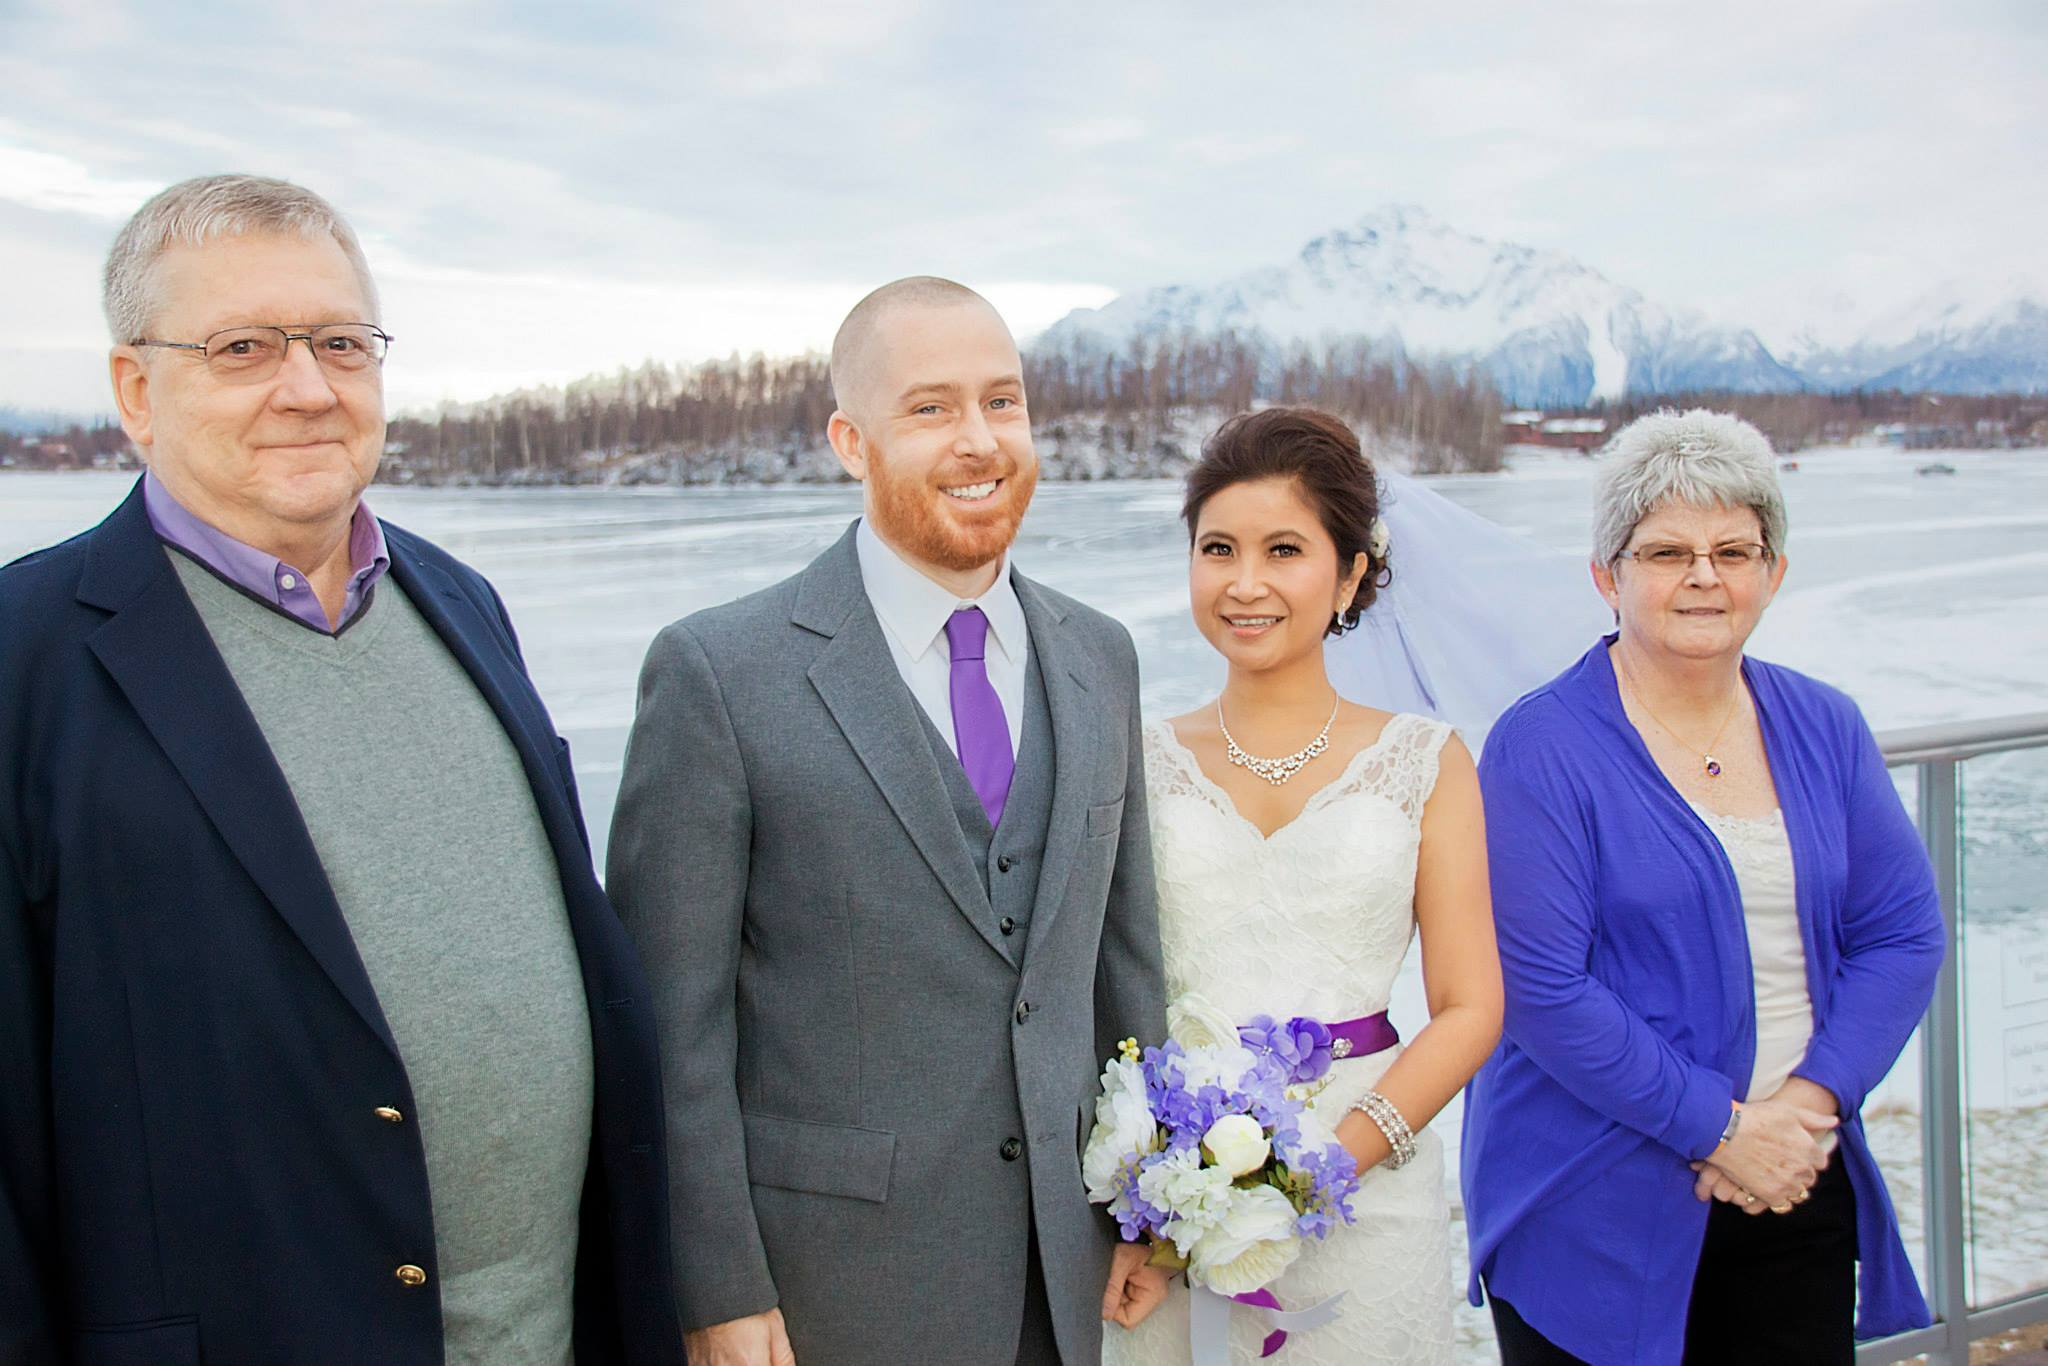 Wedding Reception in Alaska